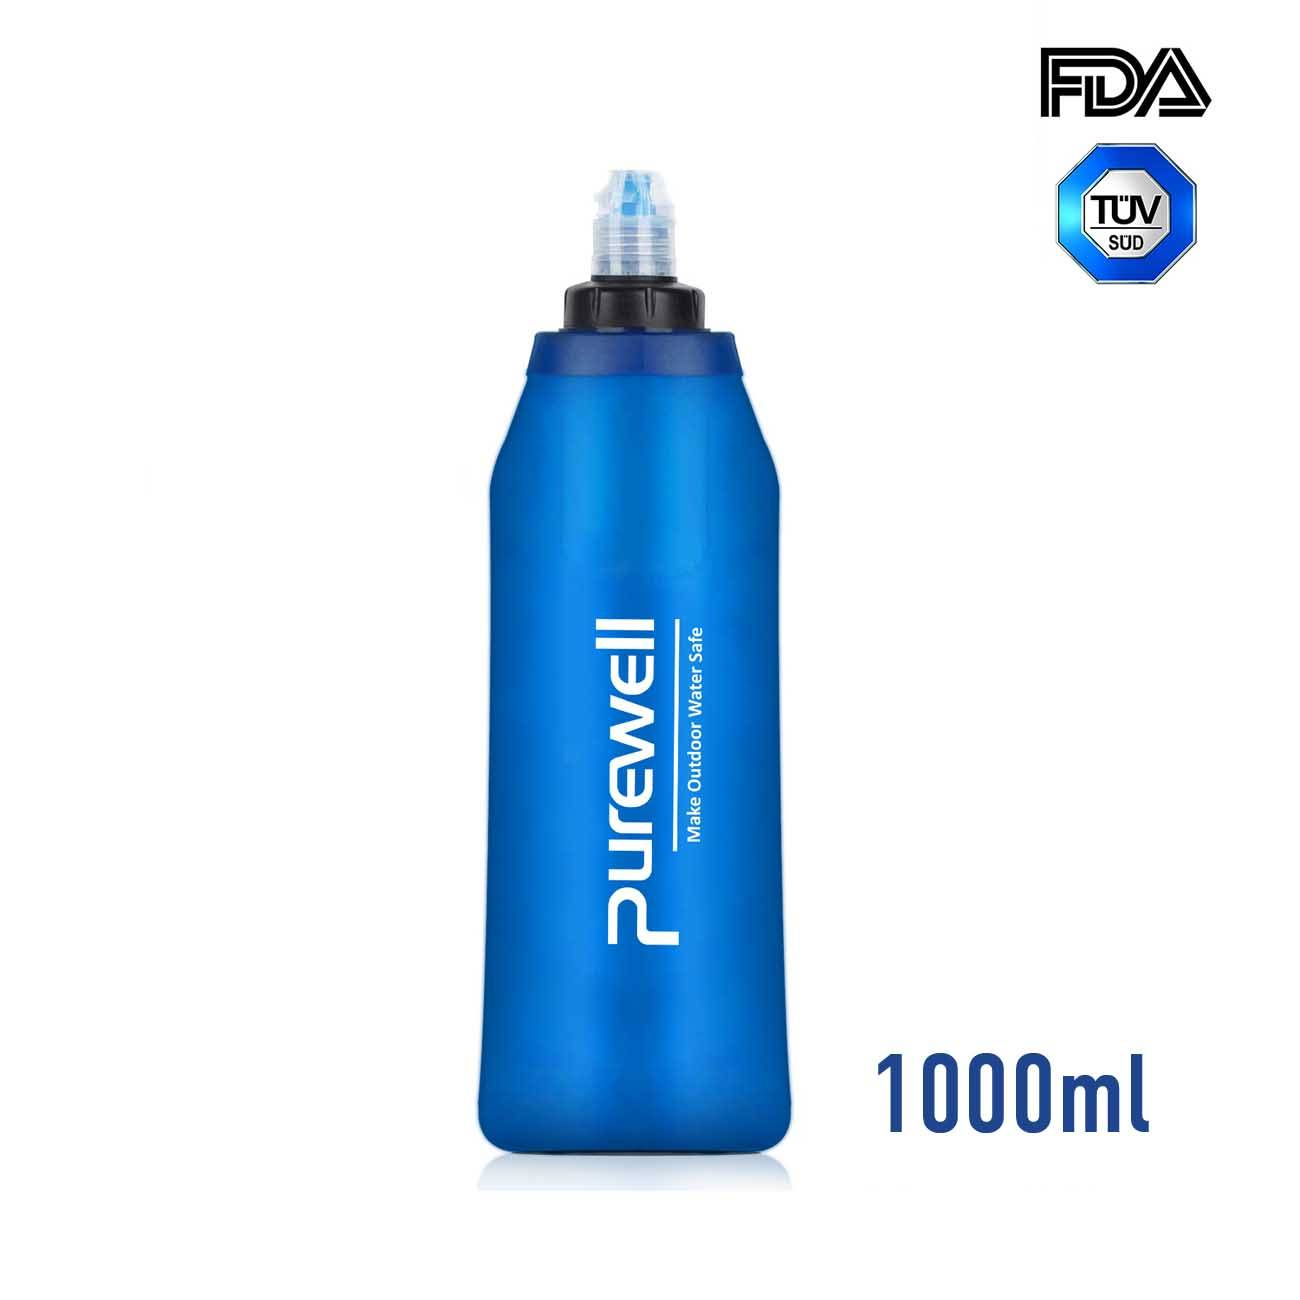 Purewell Outdoor Collapsible Soft Flask 1000ml with Filter for Running, Travel, Backpacking